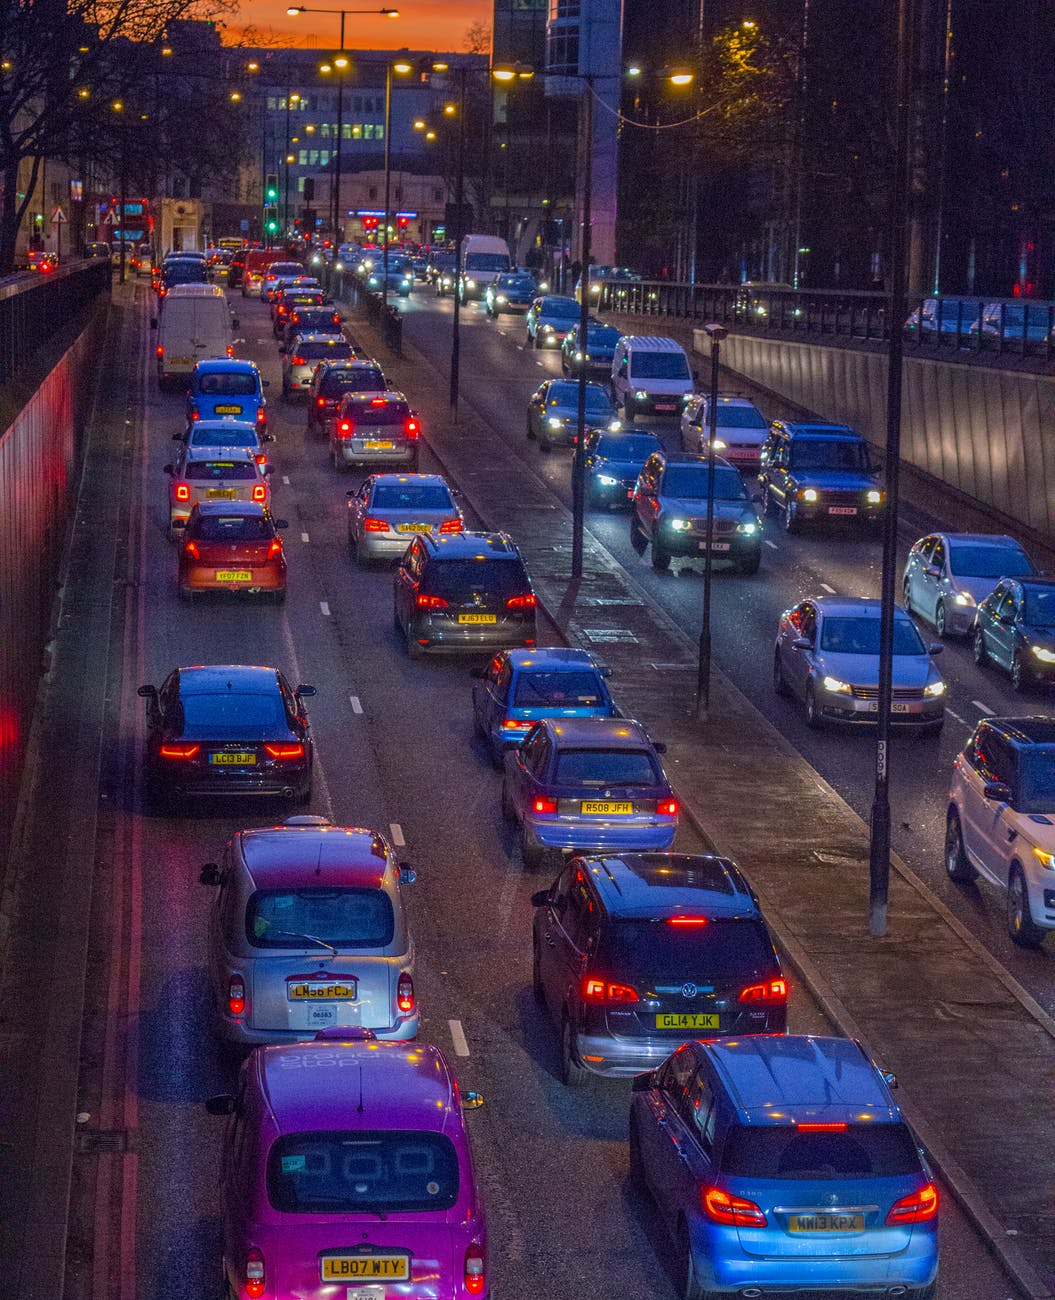 London Traffic Noise & Pollution